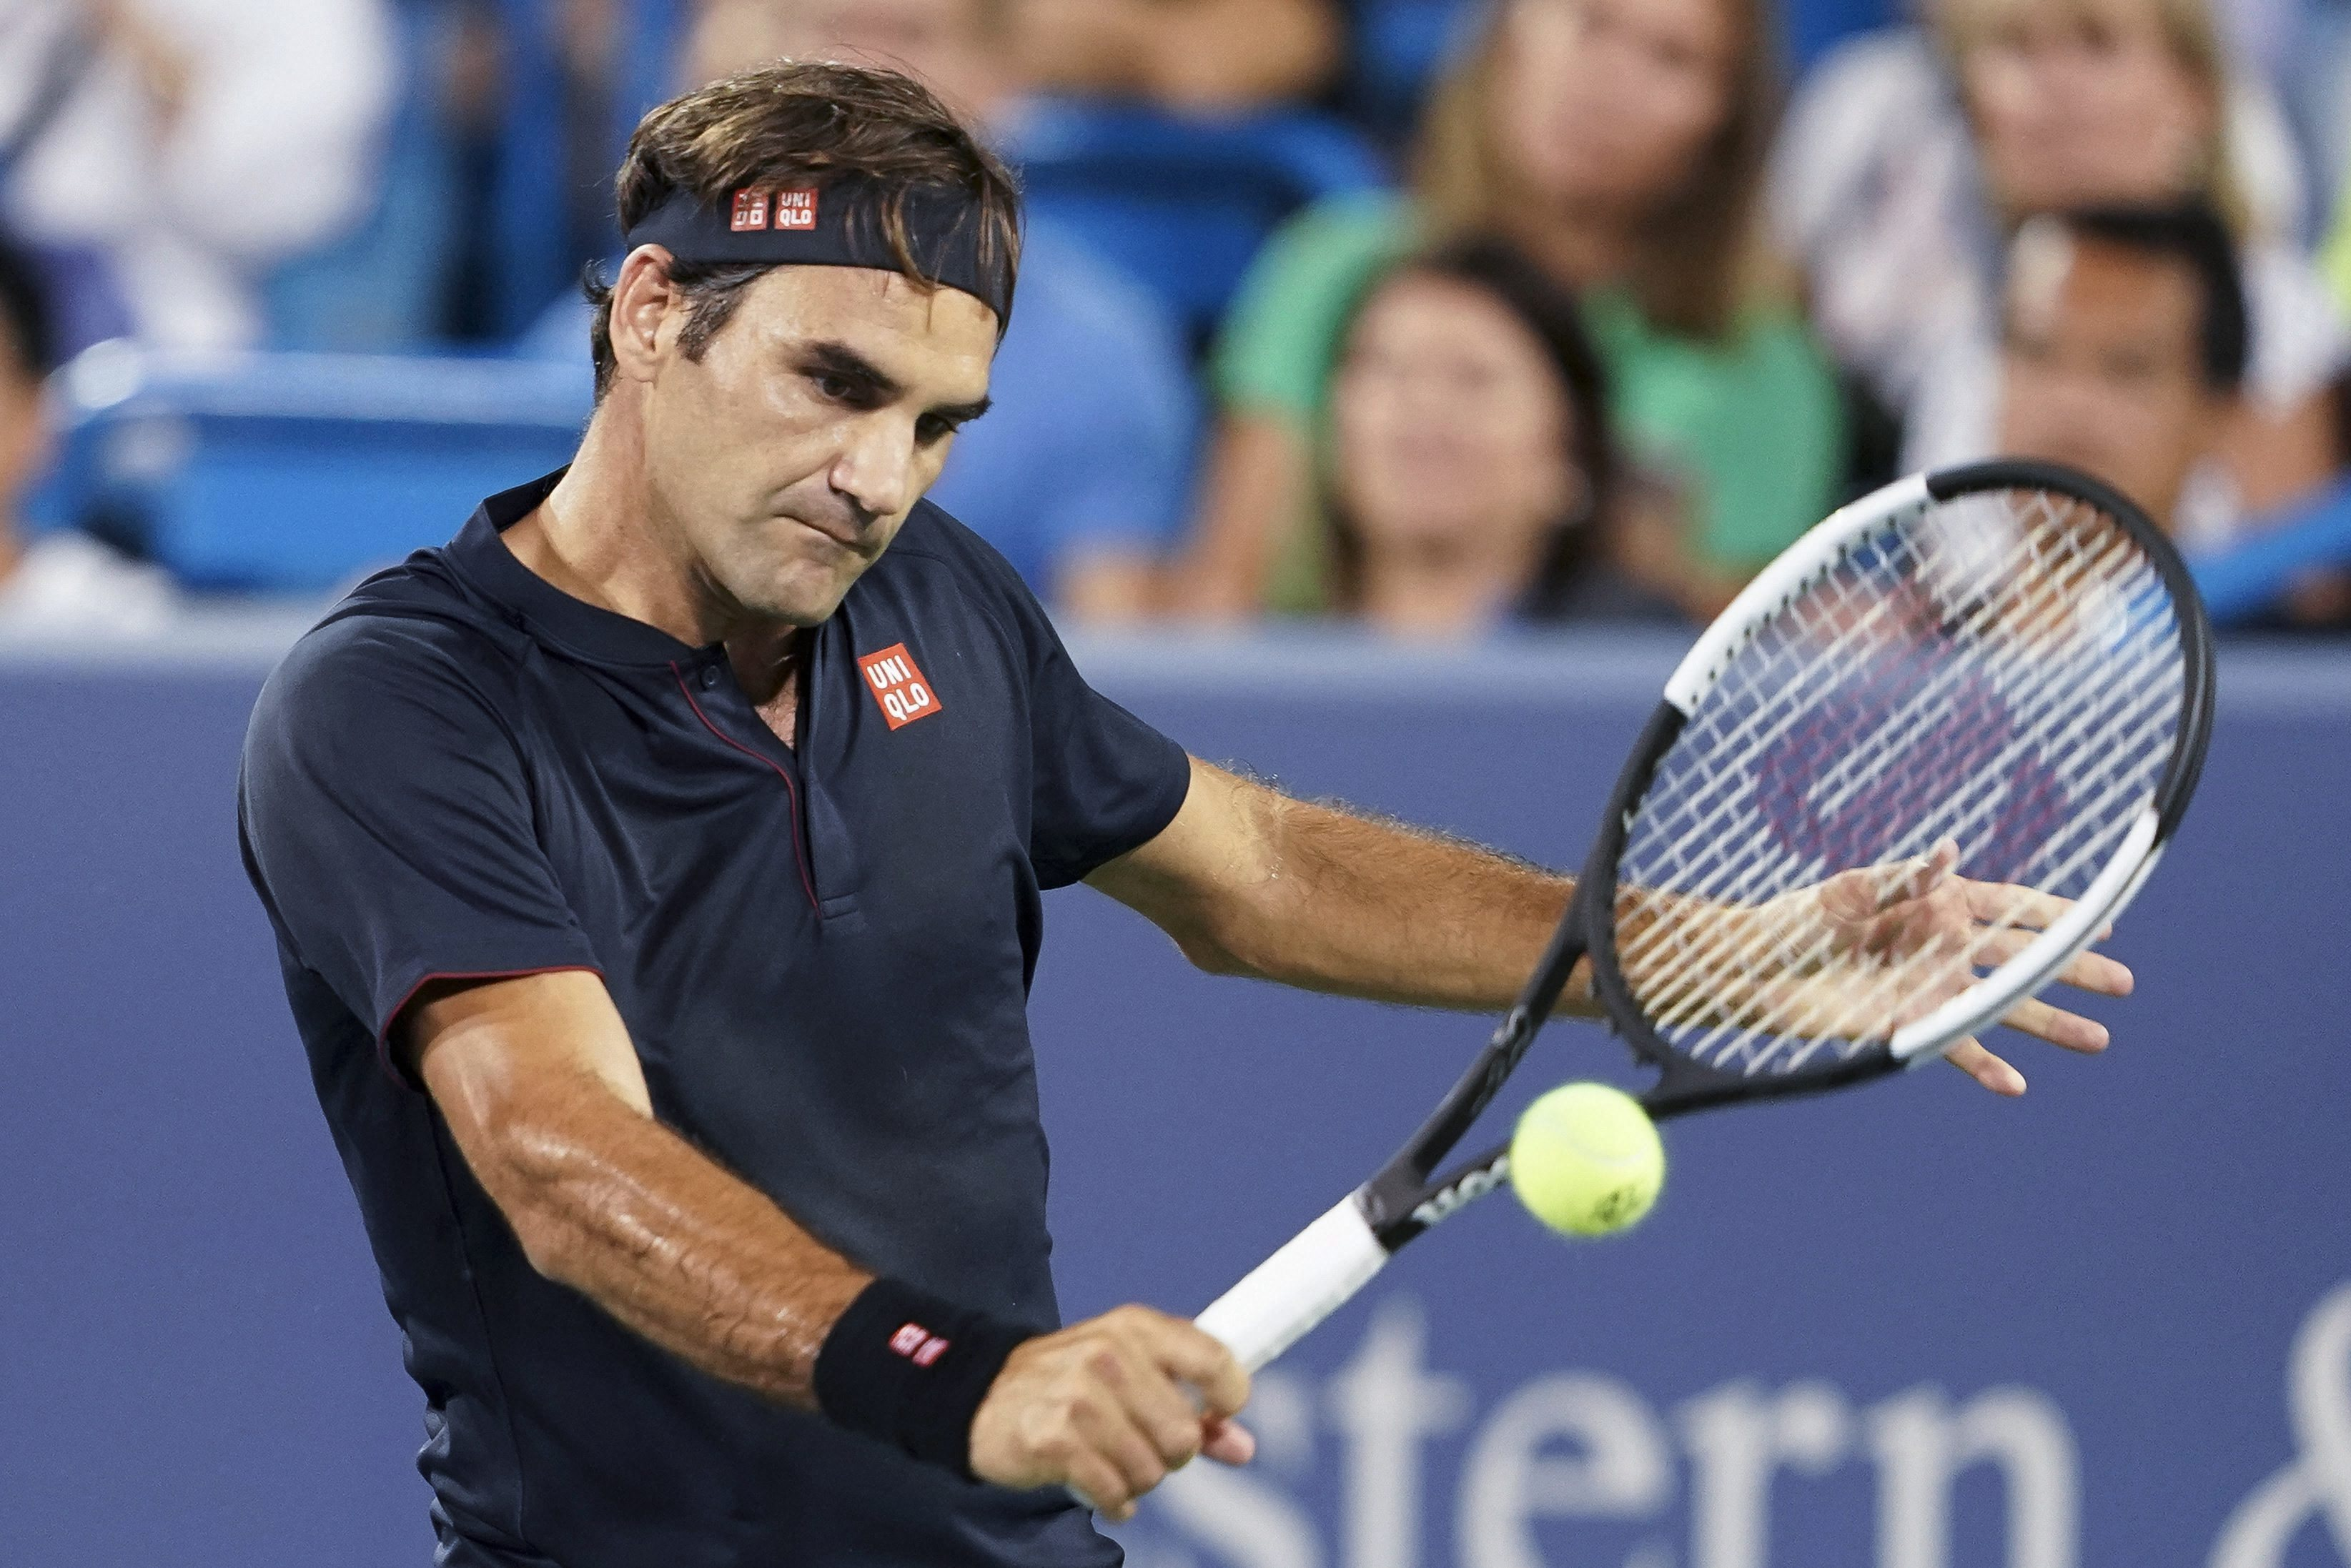 Federer to meet Djokovic in Cincinnati final